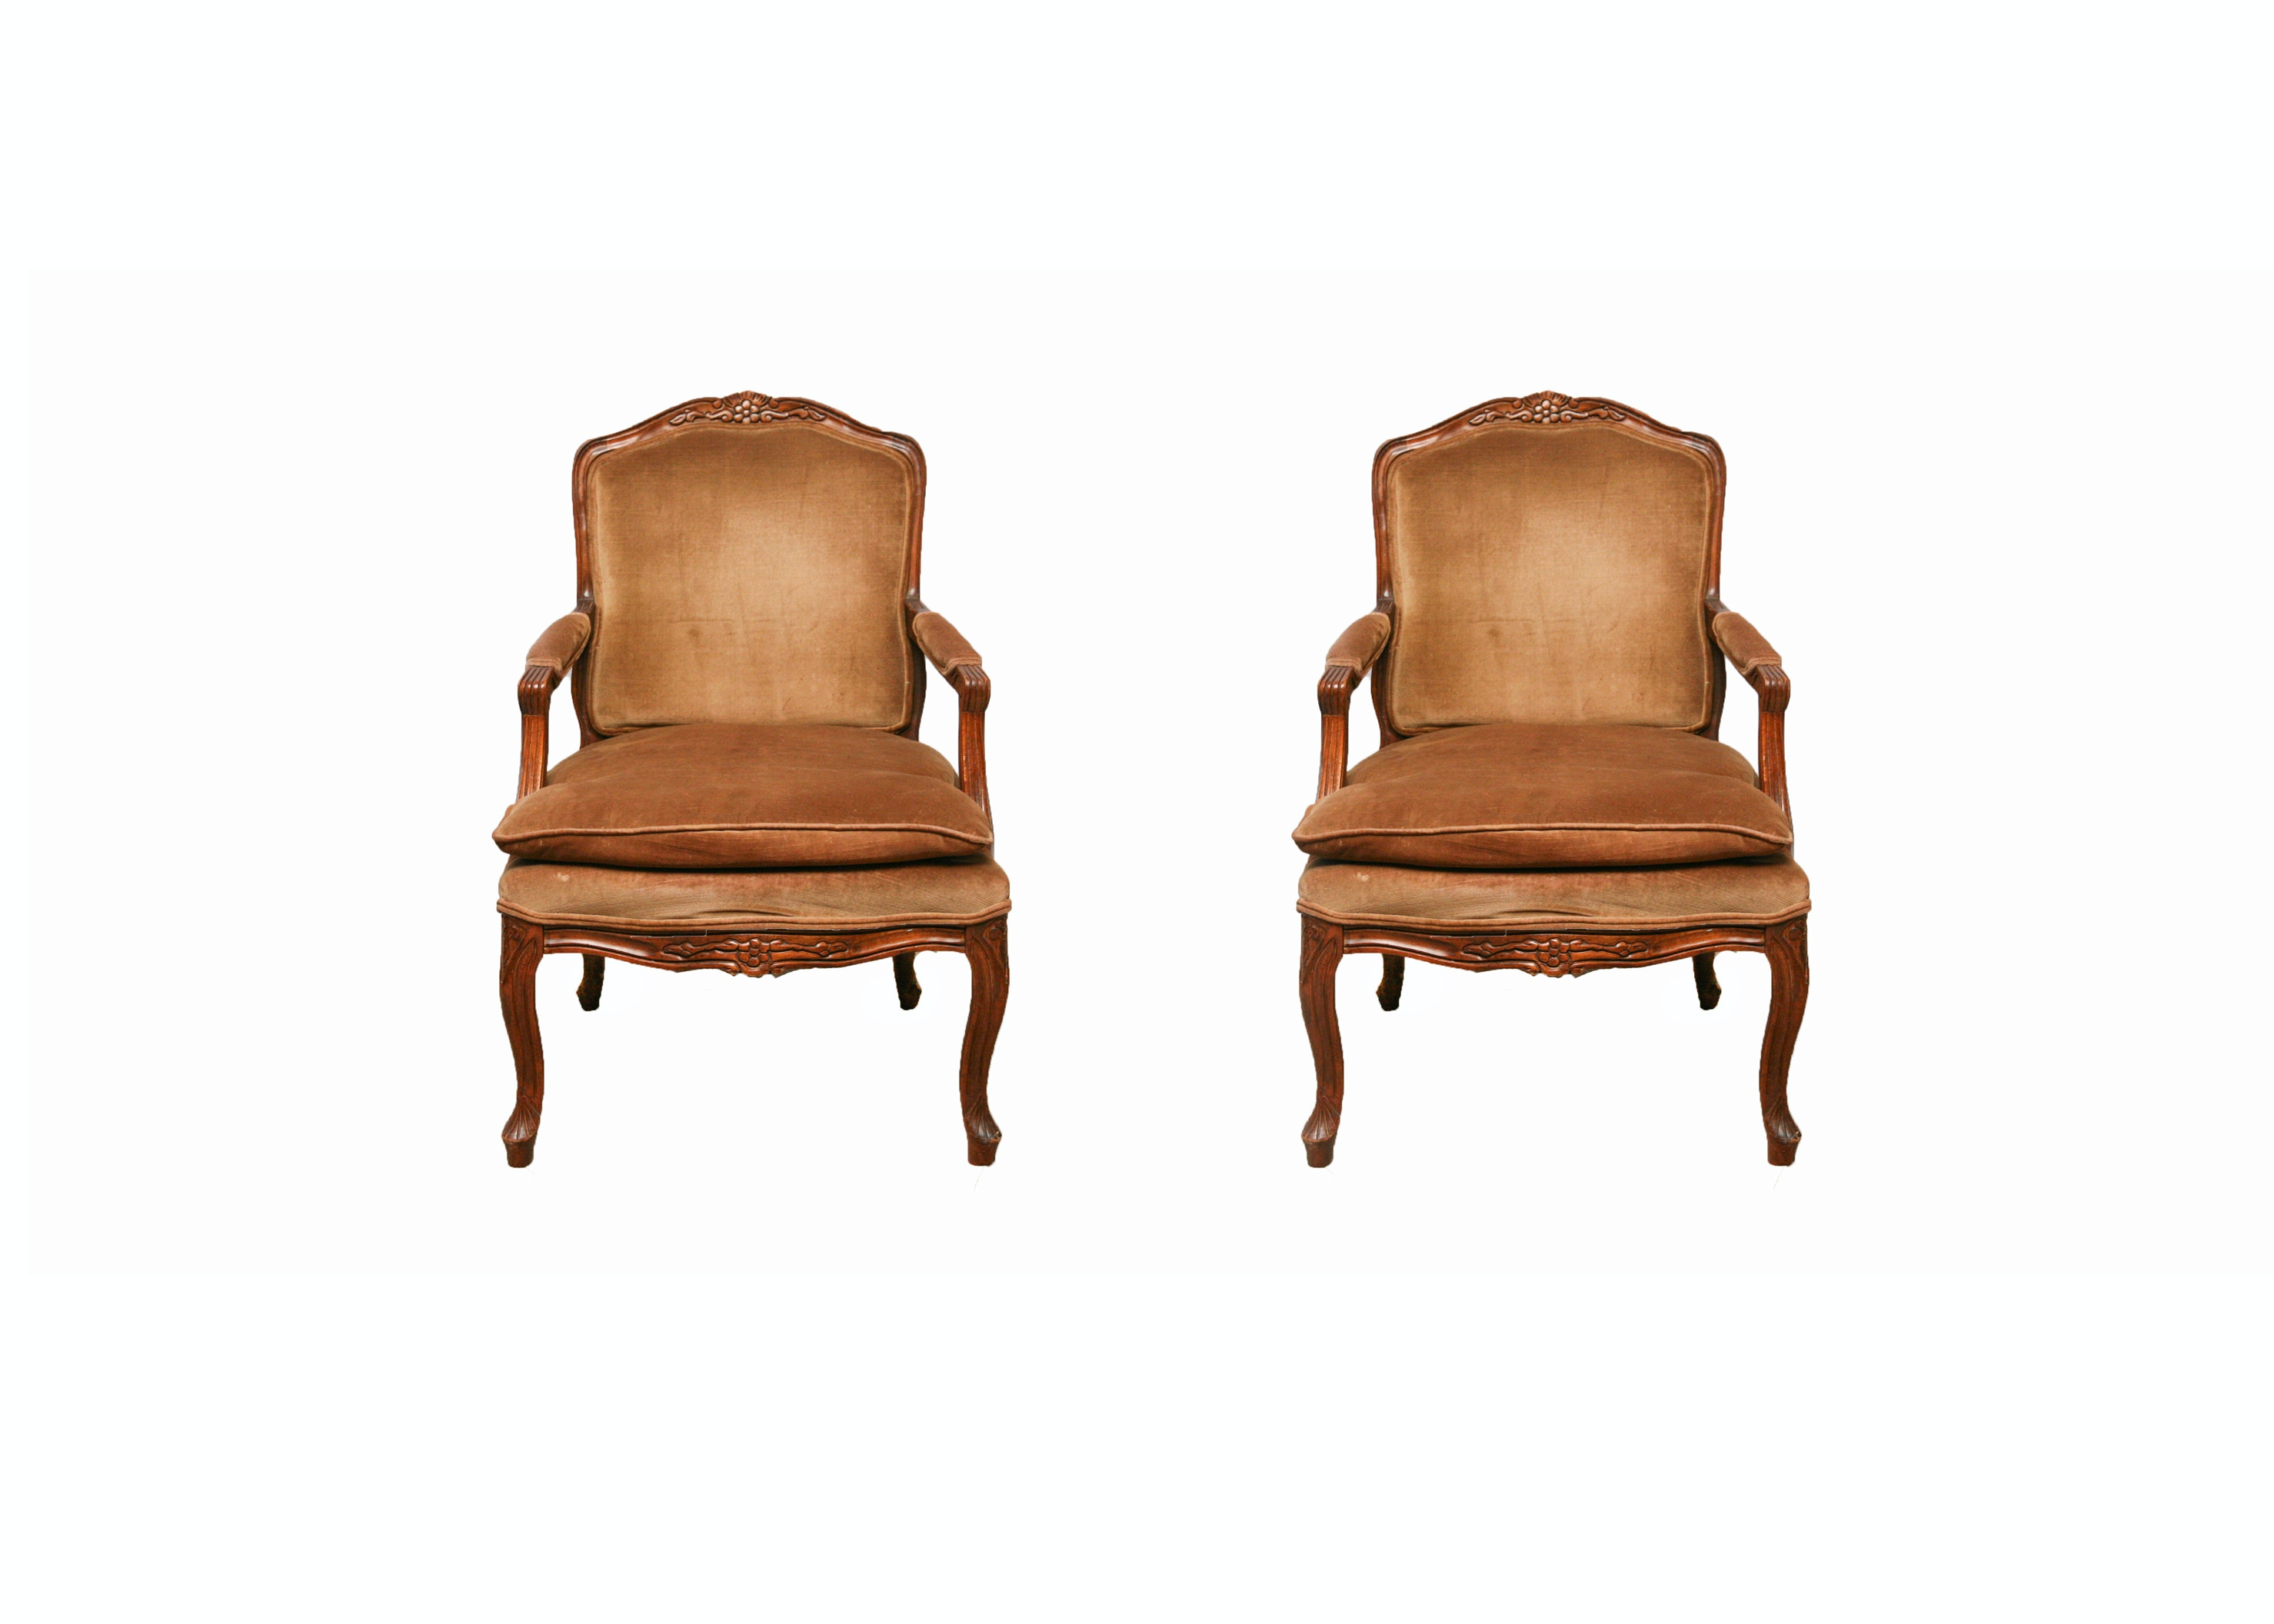 Pair of Carved Wooden Chairs with Velvet Upholstery